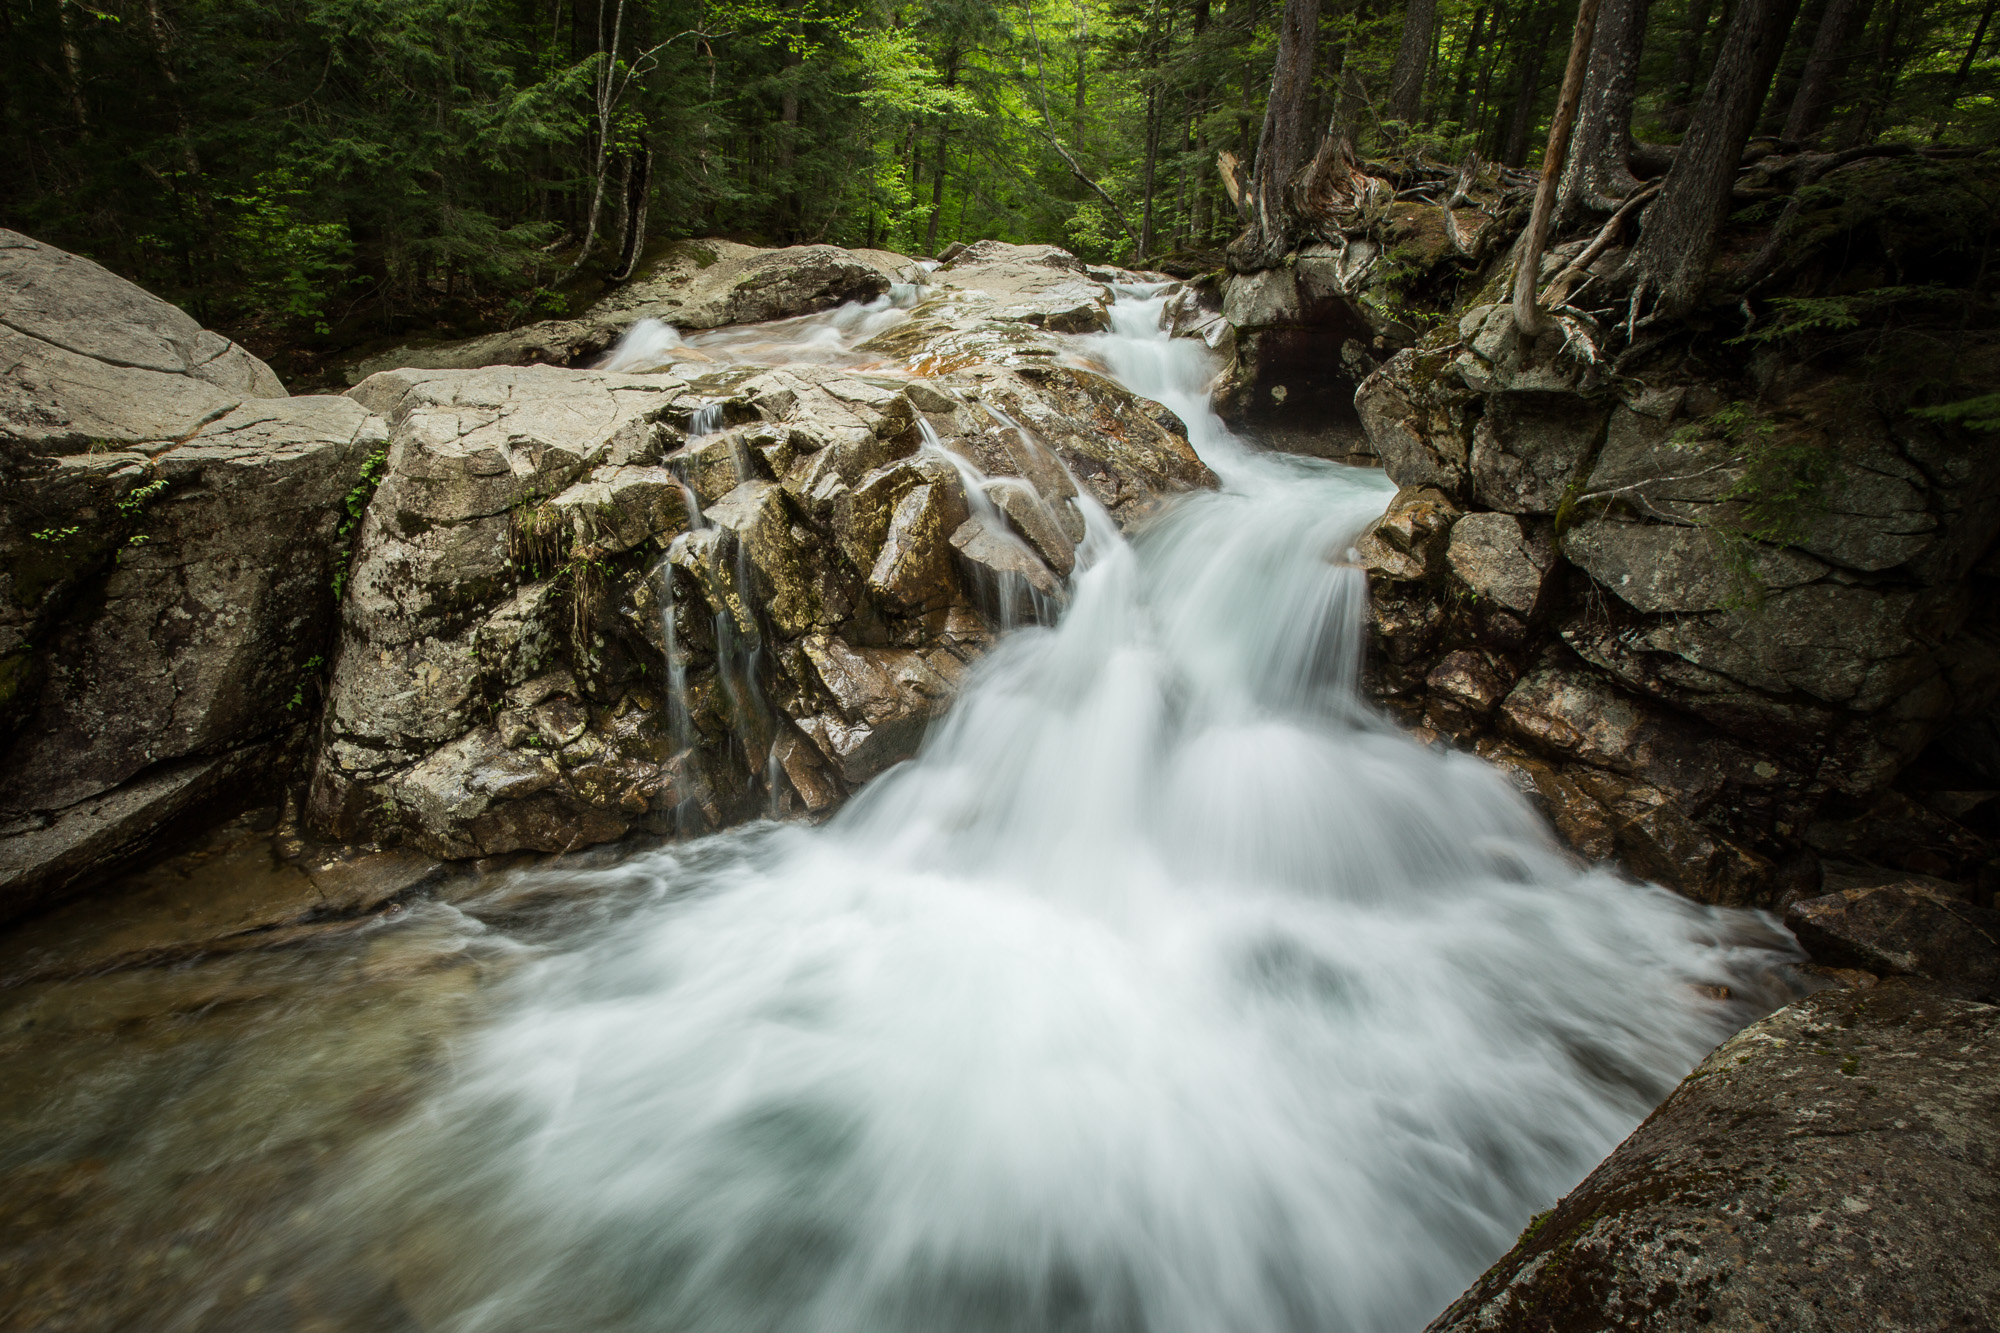 Ling: Waterfall at Franconia State Park, NH - ISO 100, f/22, ss 1/2, focal length 16mm